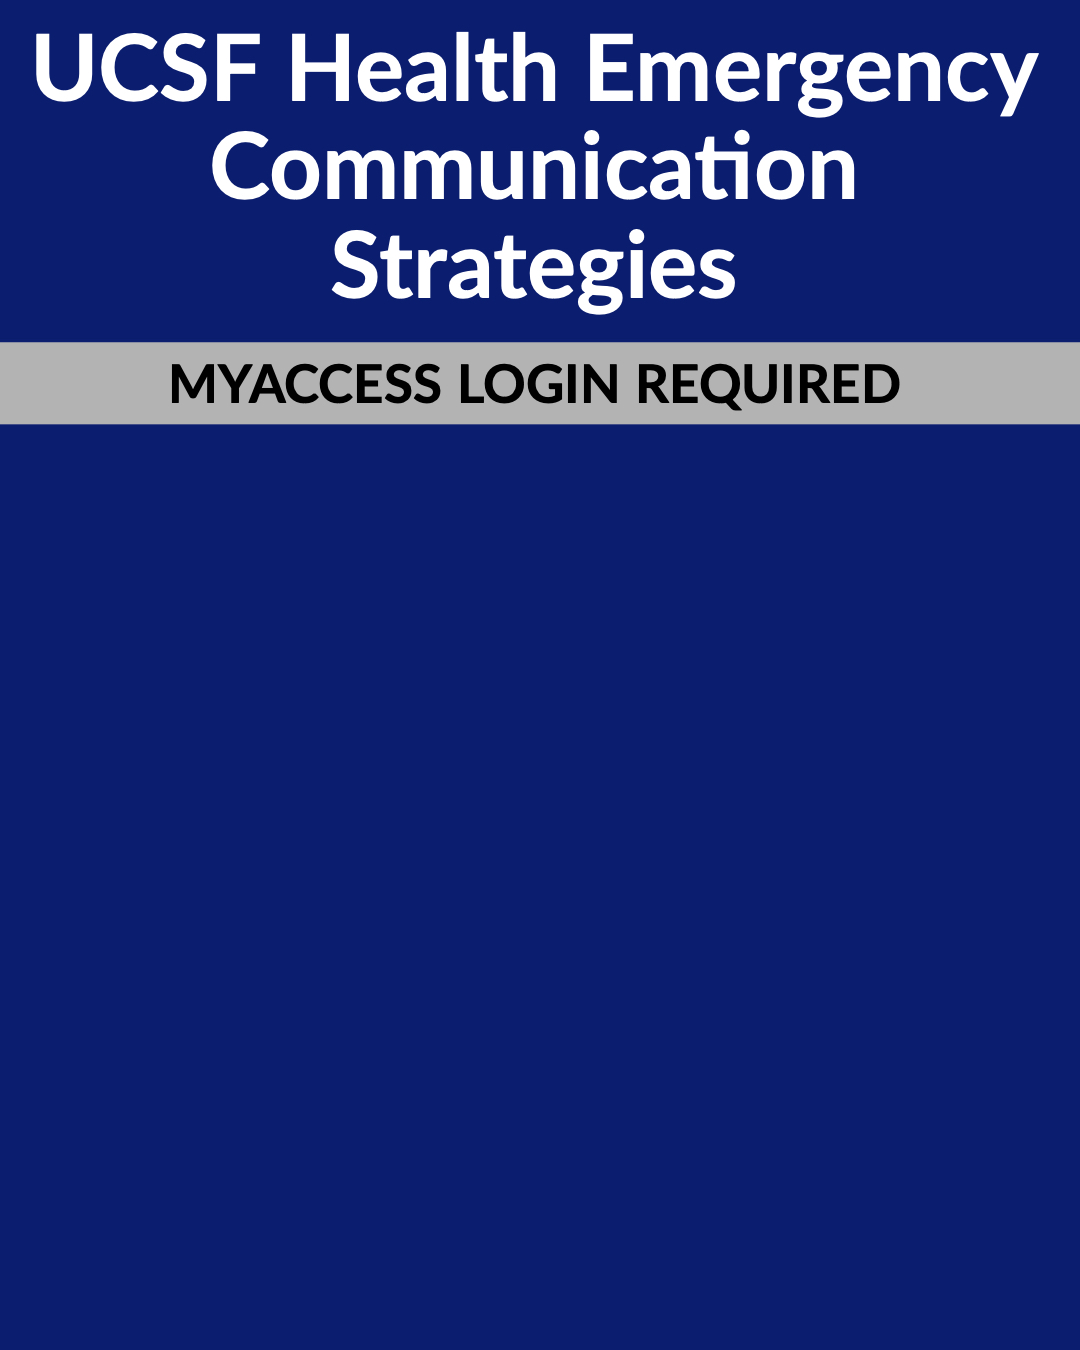 UCSF Health Emergency Communication Strategies